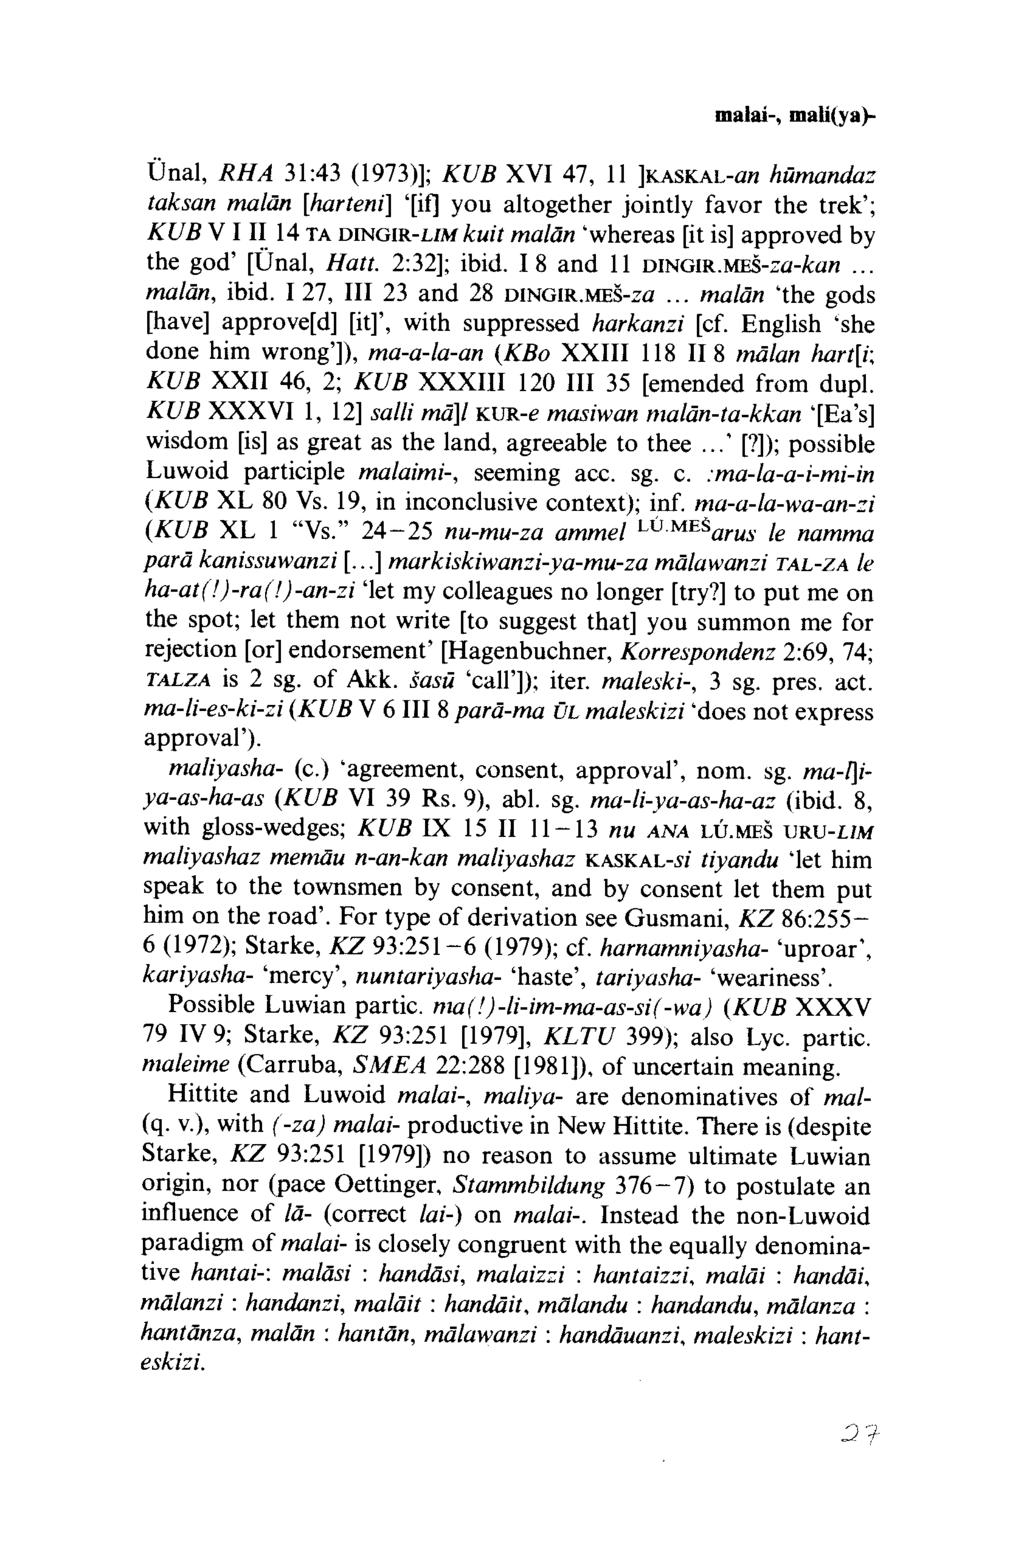 malai-, mali(ya)- Ünal, RHA 31:43 (1973)]; KUB XVI 47, 11 ]kaskal-ûw hümandaz taksan malân [harteni] [if] you altogether jointly favor the trek ; KUB V I I I 14 ta DiNGiR-LiMkuit malän whereas [it